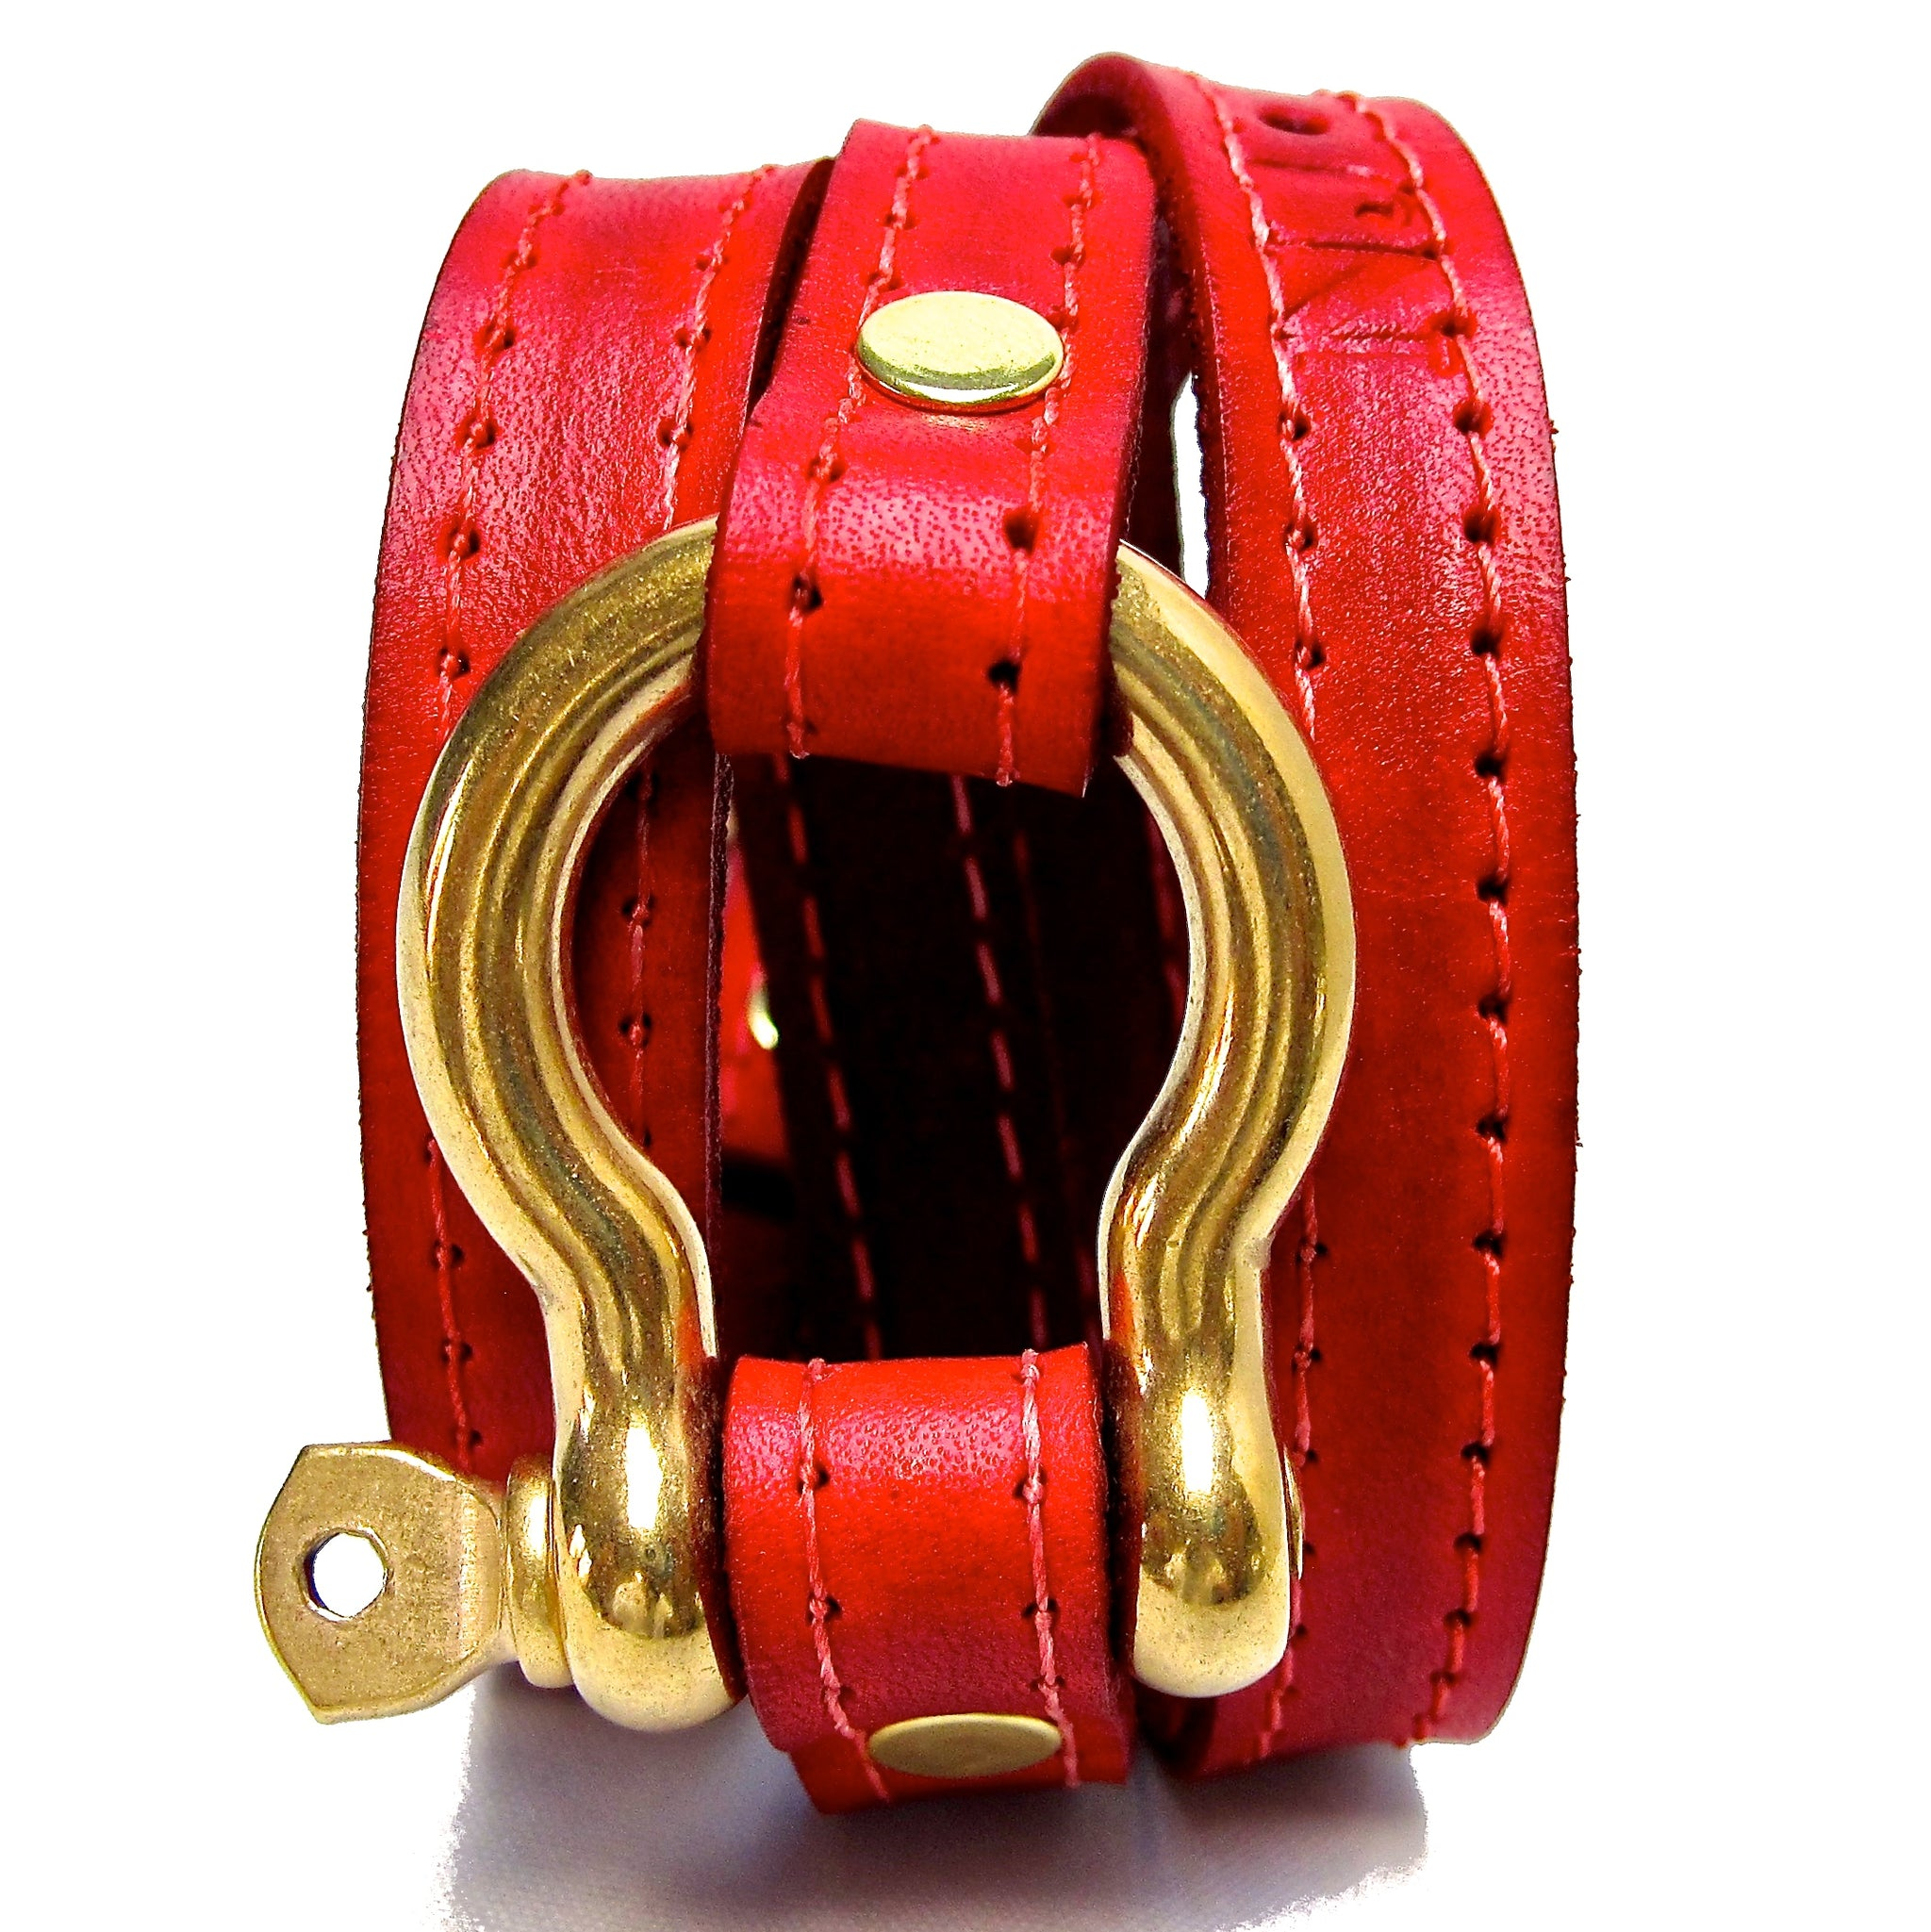 Nyet jewelry Signature Gold Shackle Wraparound Bracelet Red BY NYET JEWELRY